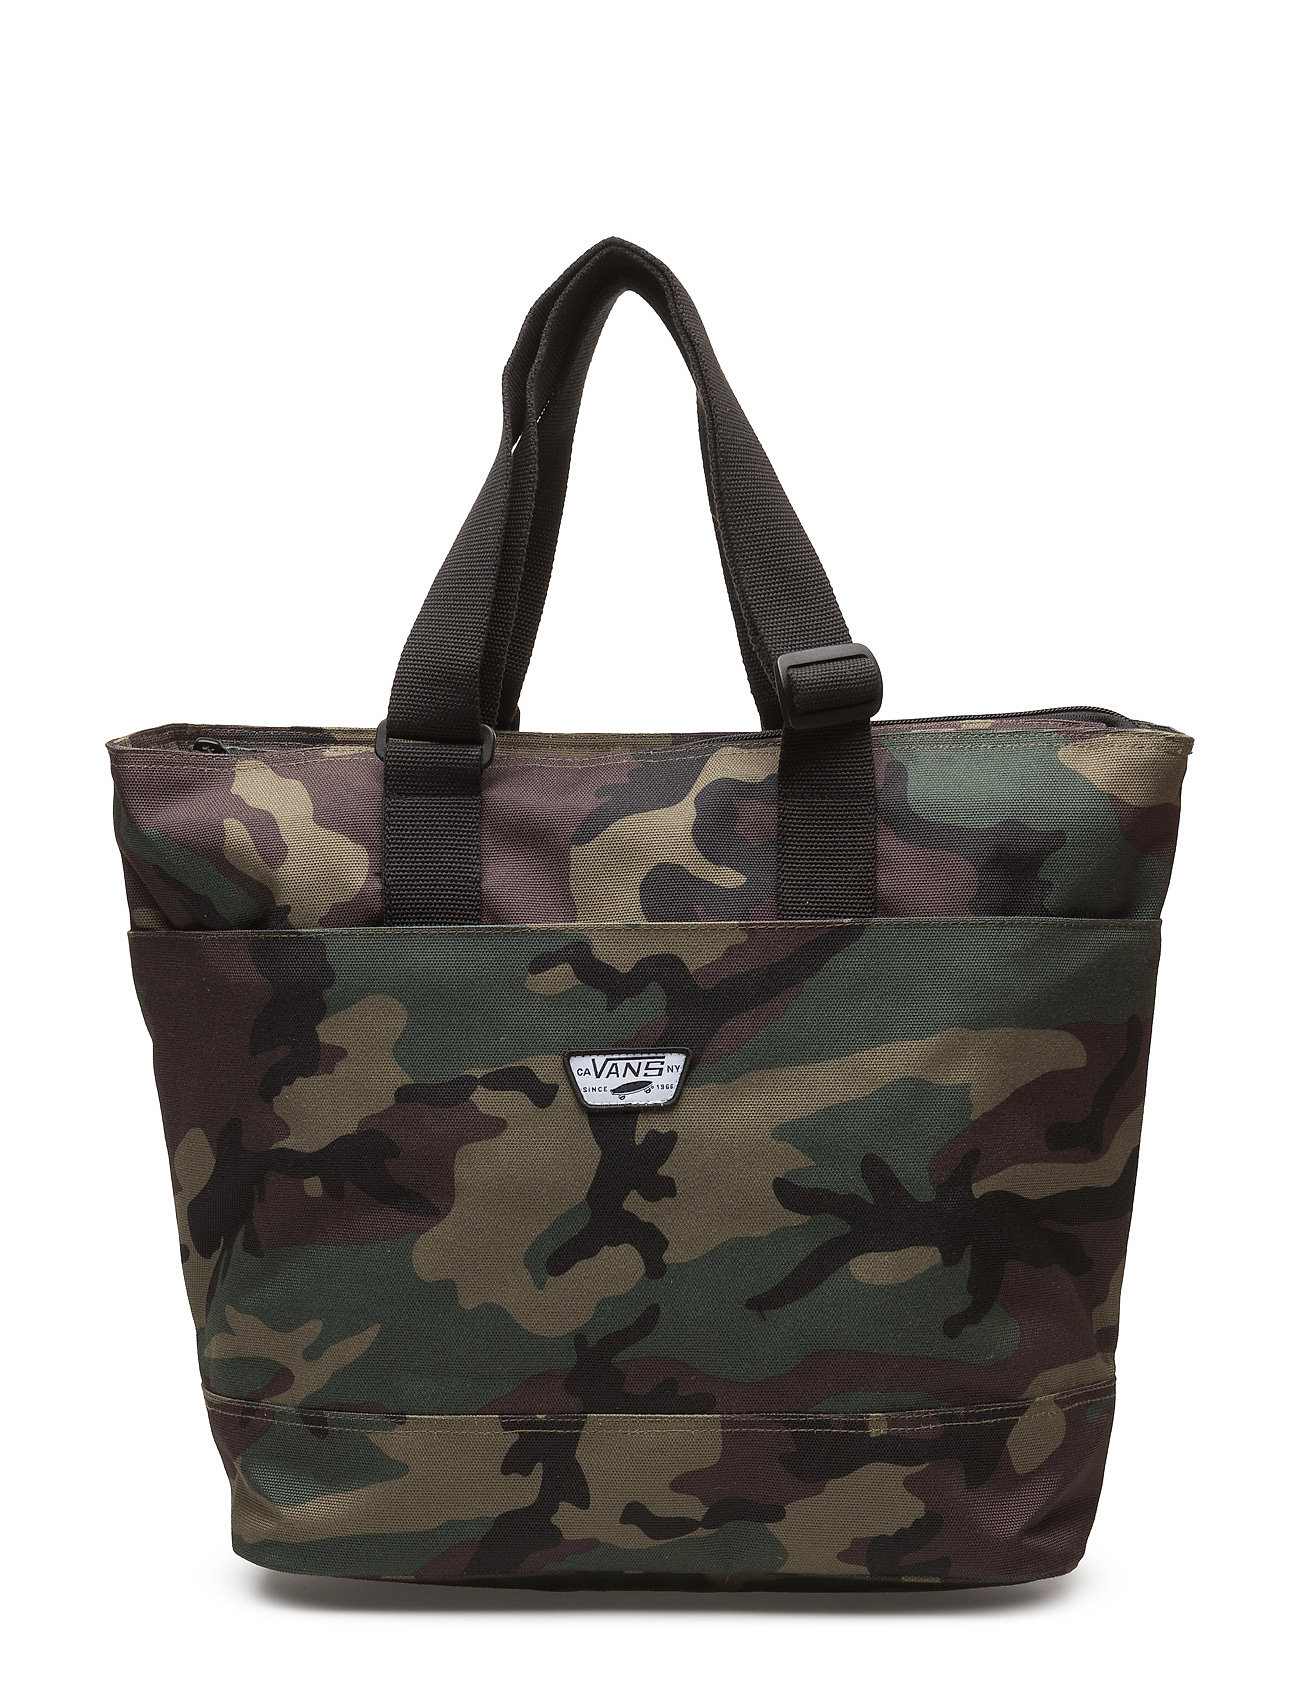 vans – Mn freestyle tote classic camo på boozt.com dk